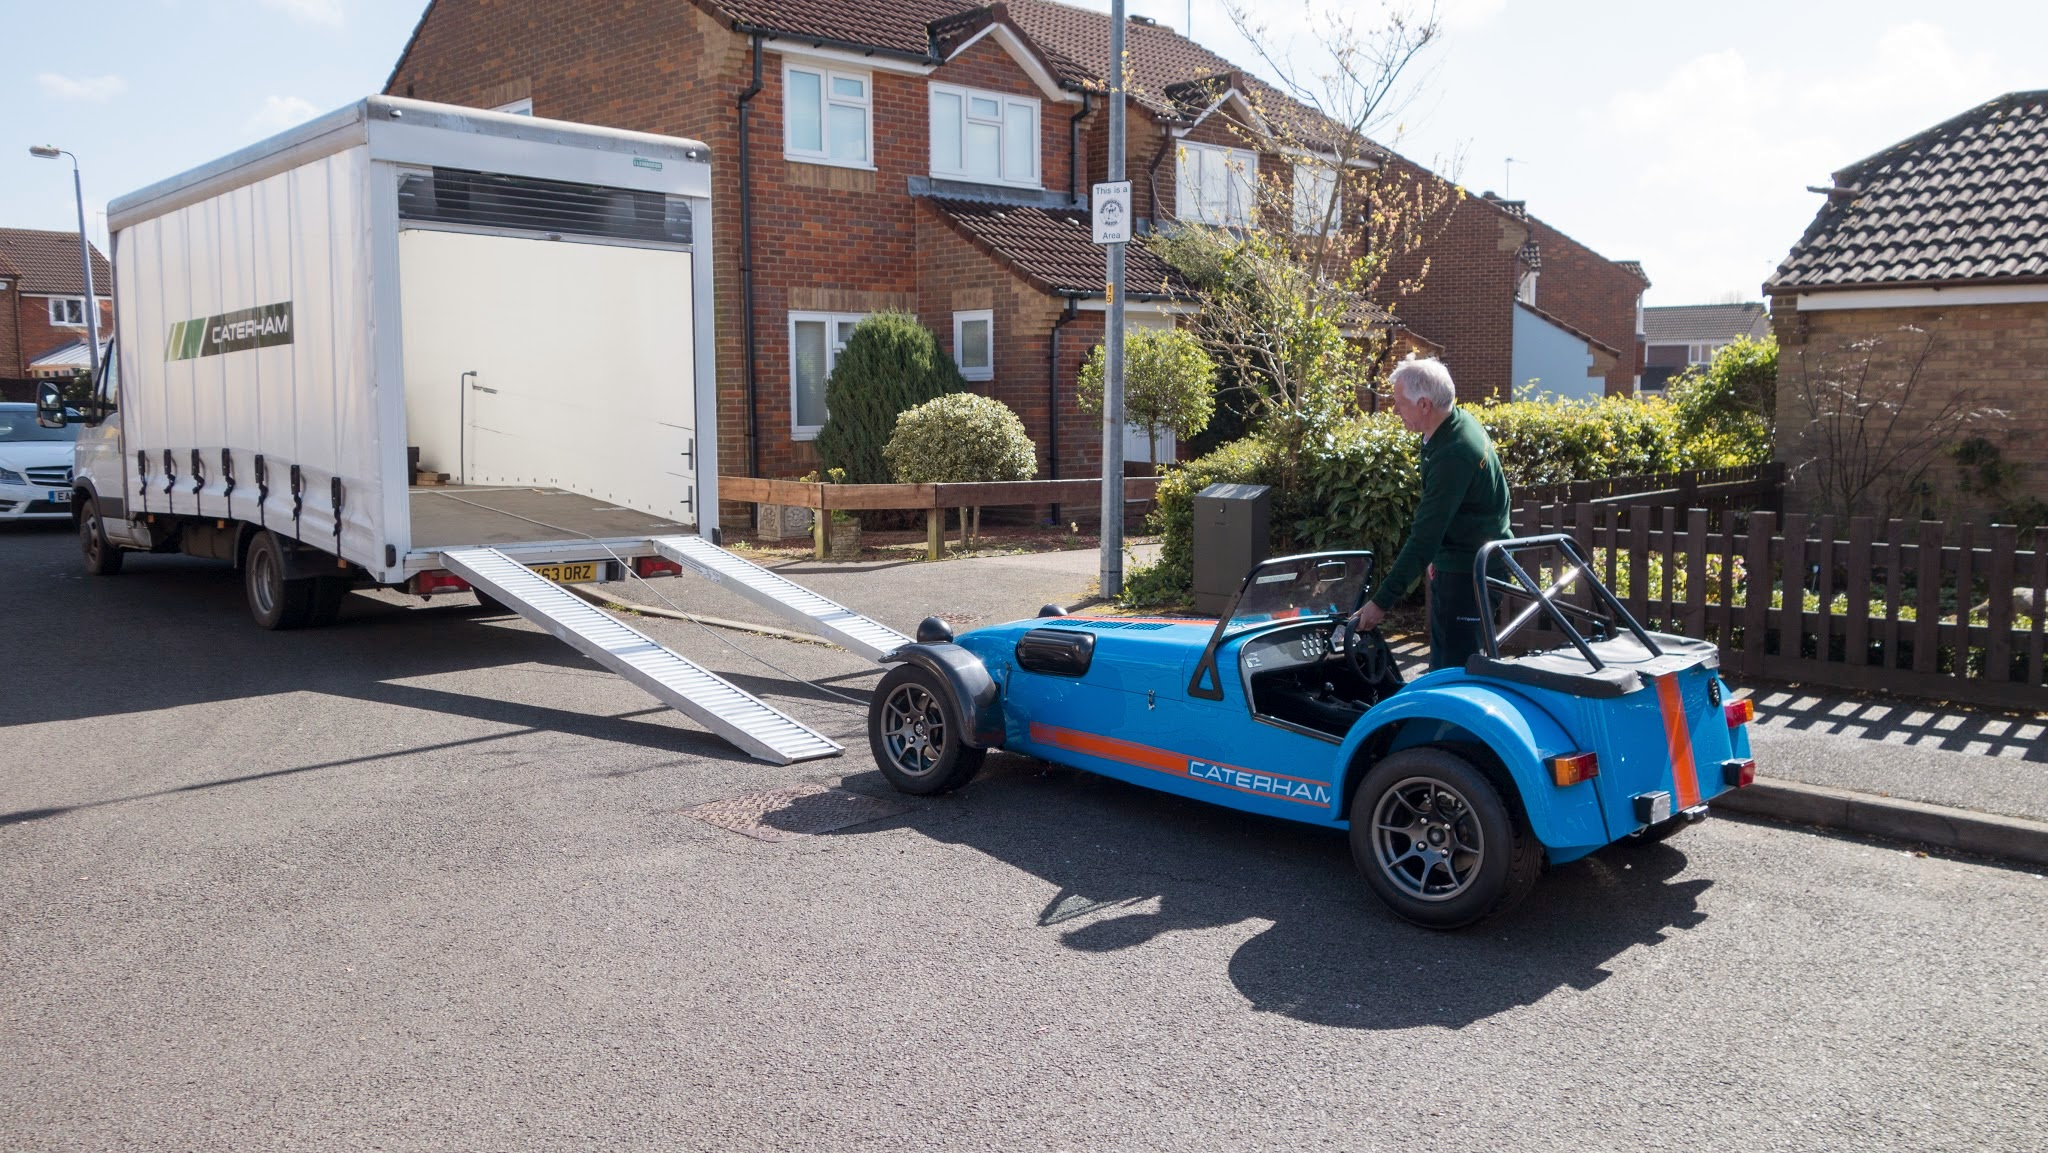 Ian preparing the car for loading into the Caterham van.